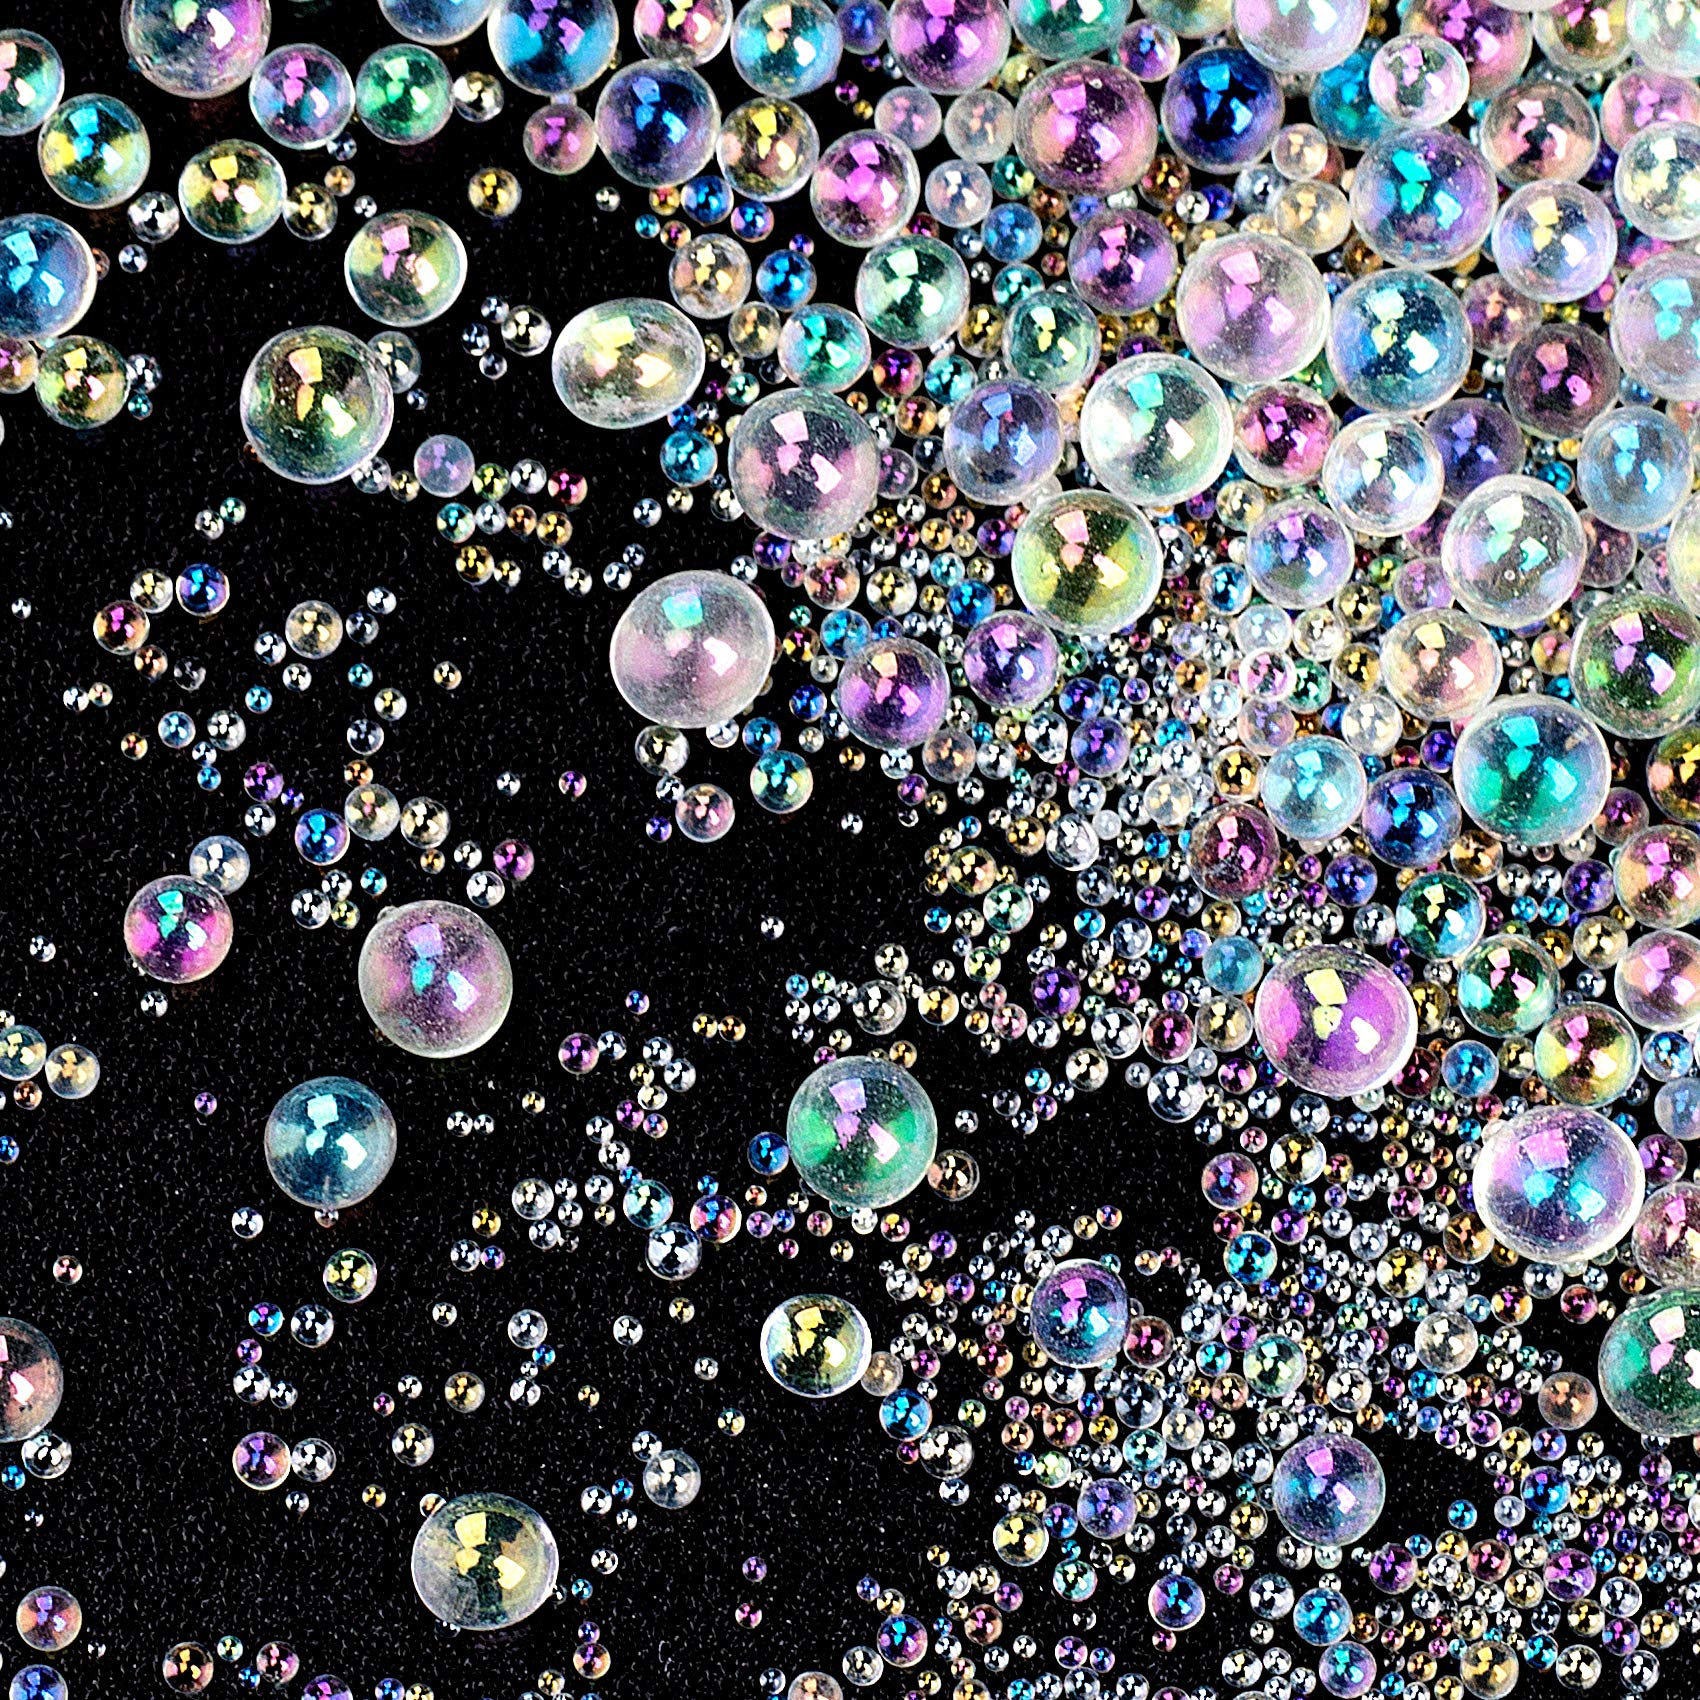 OIIKI 225g UV Resin Bubble Beads, Transparent Iridescent Colored Water Droplet Bubble Beads No Hole Bubble Beads Resin Supplies Accessories for Shaker Resin Molds Fillers Jewelry Making(0.4mm to 3mm)